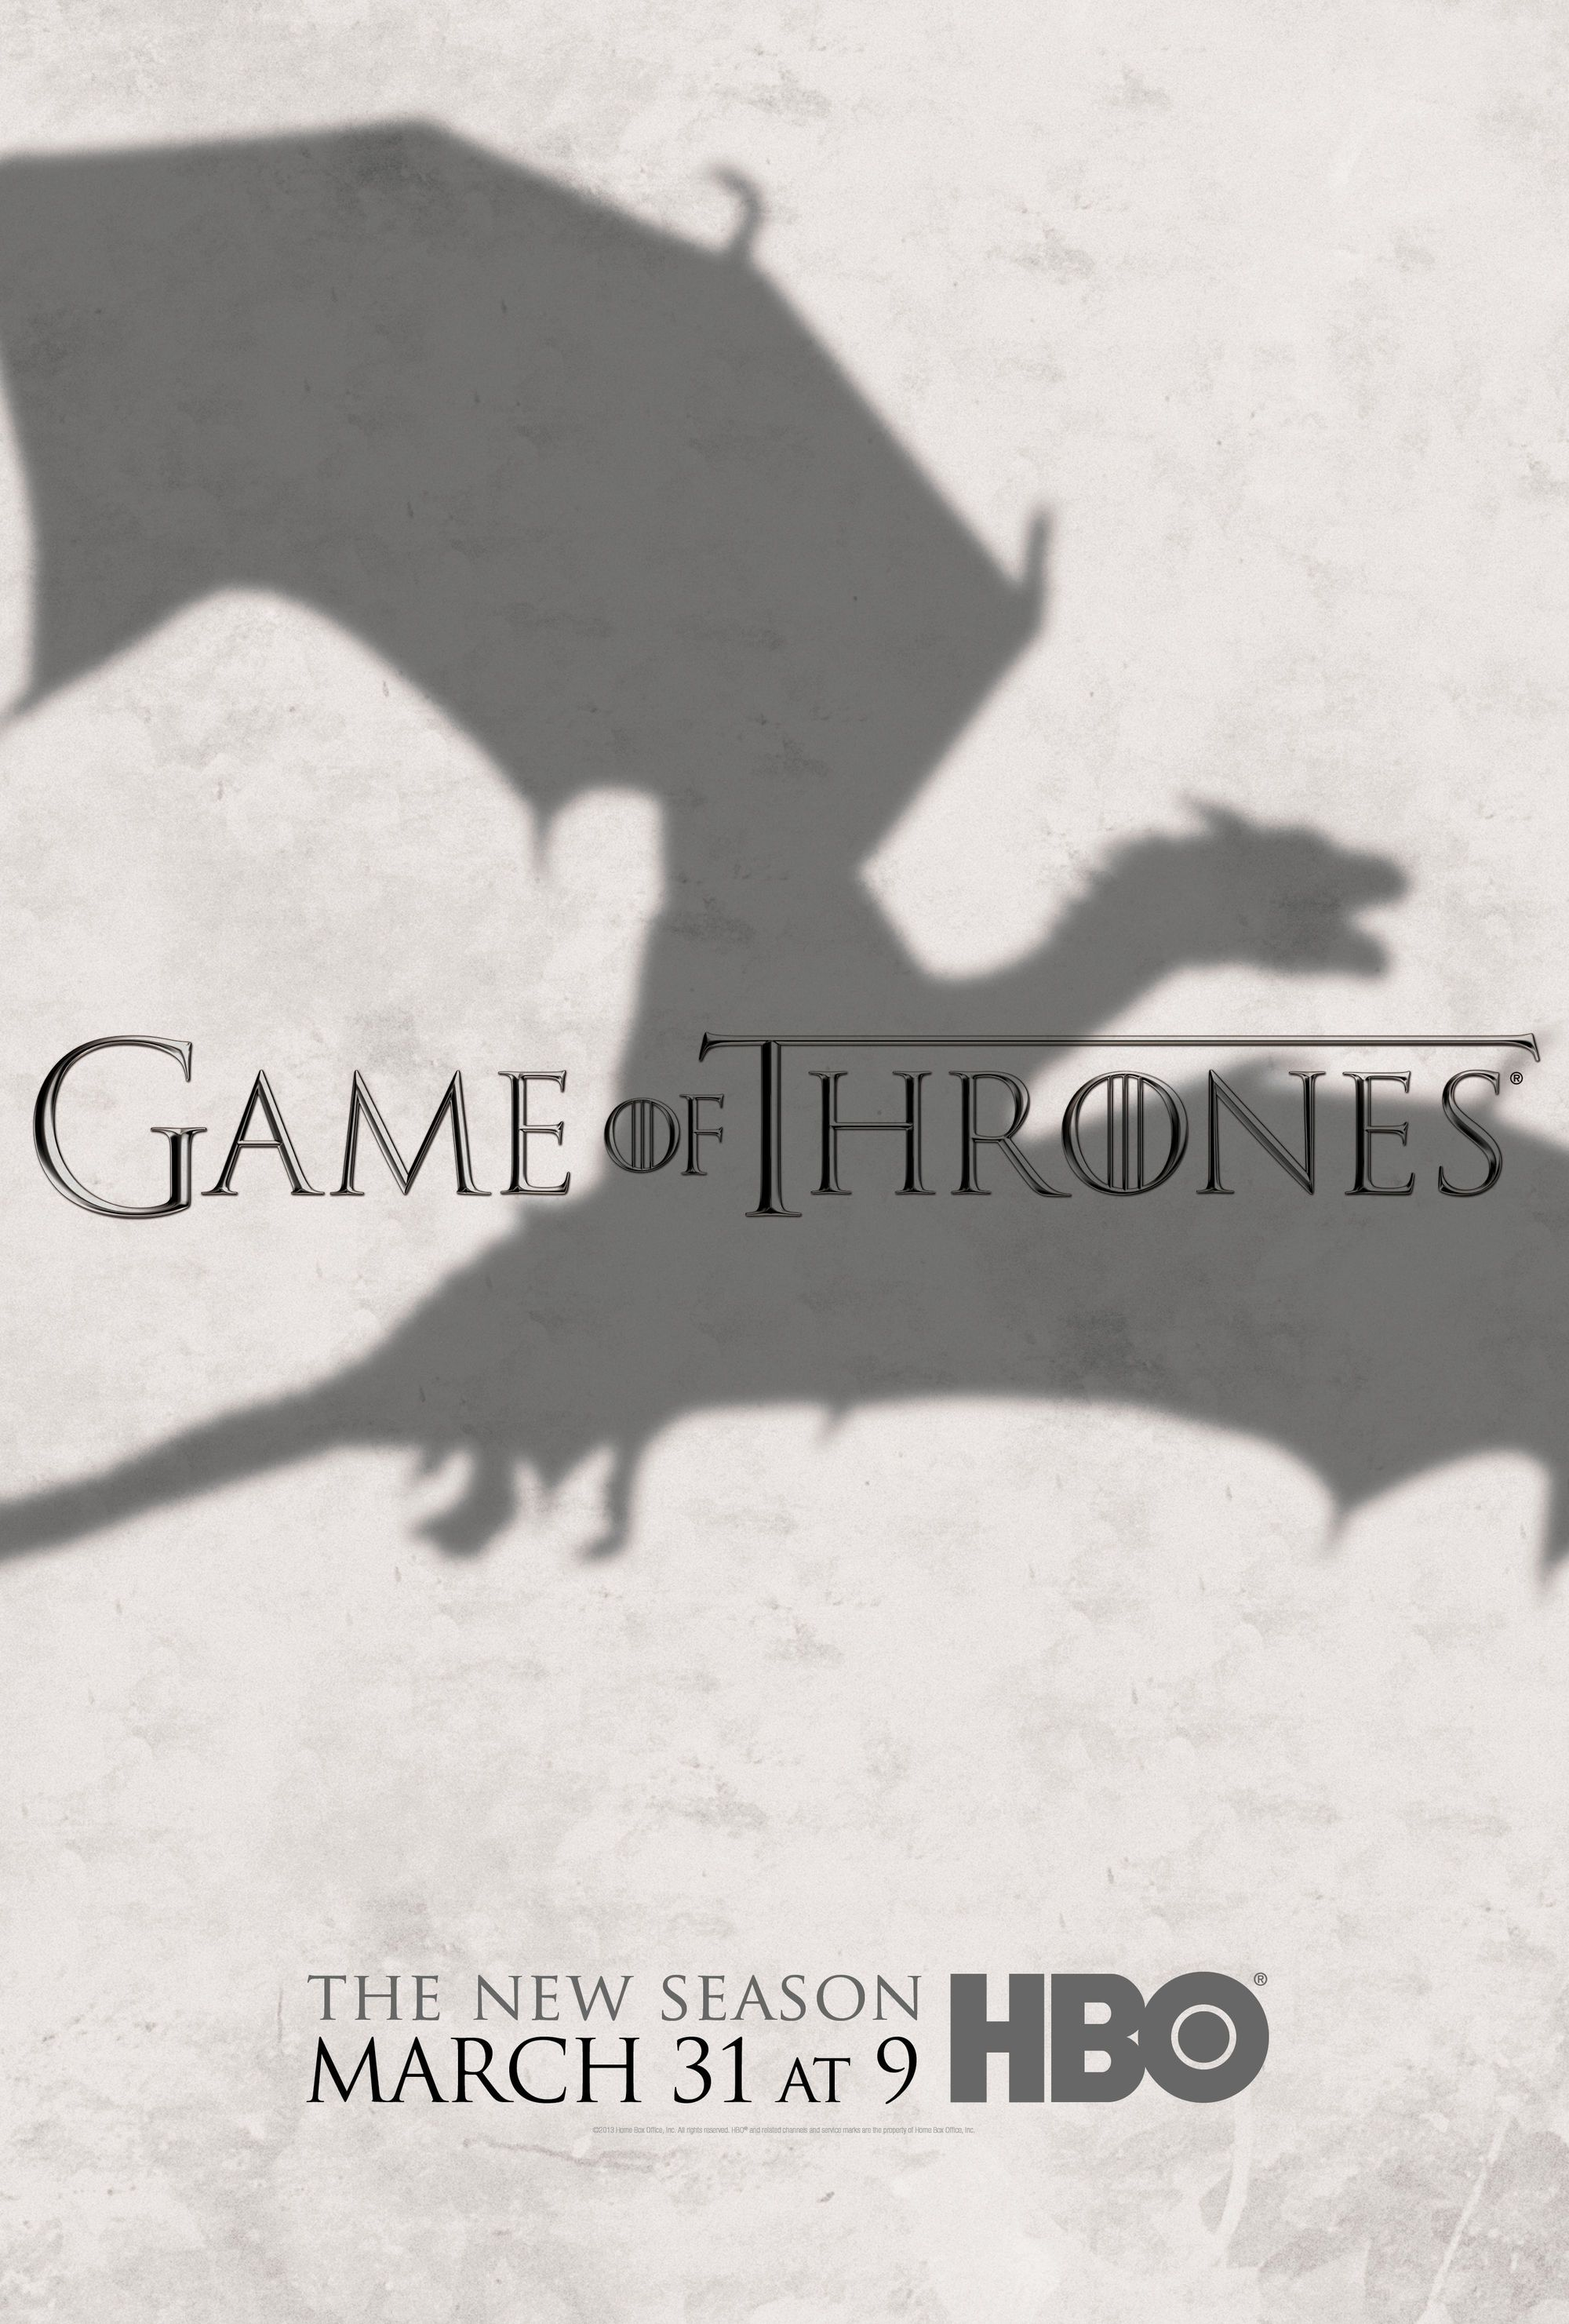 Game of Thrones History and Lore season 3 - Long-métrage d'animation (2014)